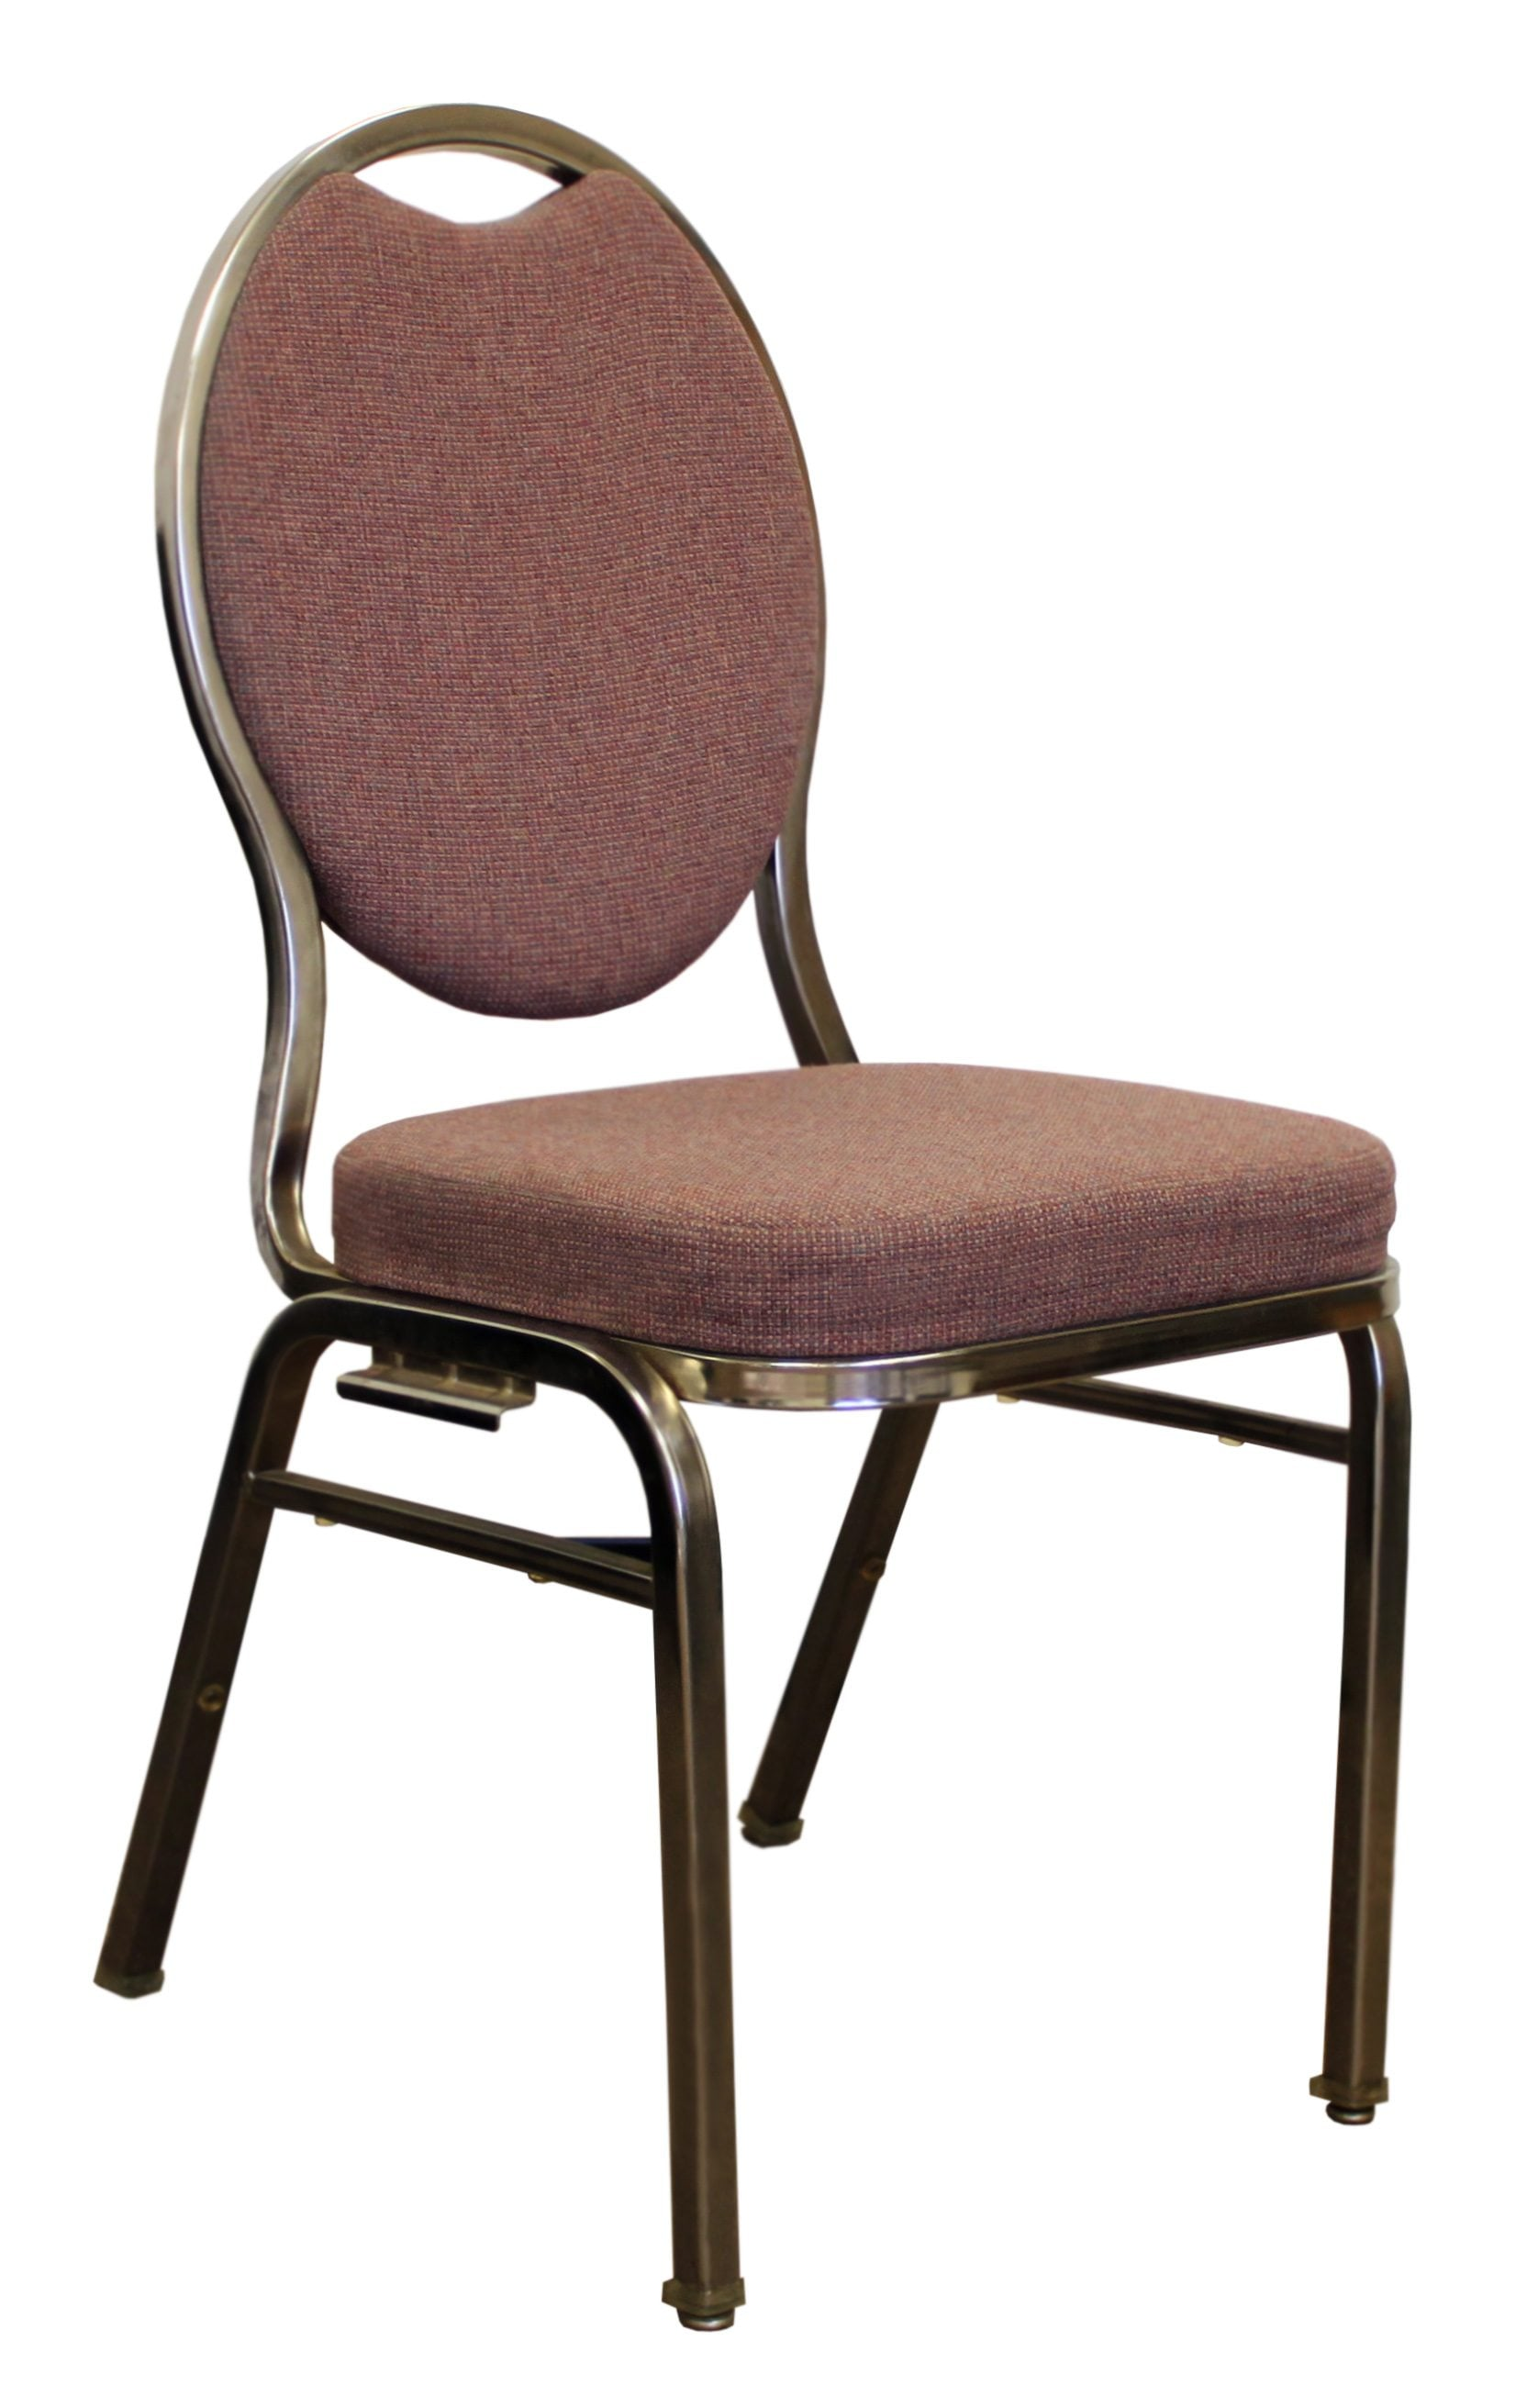 Virco Chairs Virco Commercial Grade Used Upholstered Stack Chair Mauve